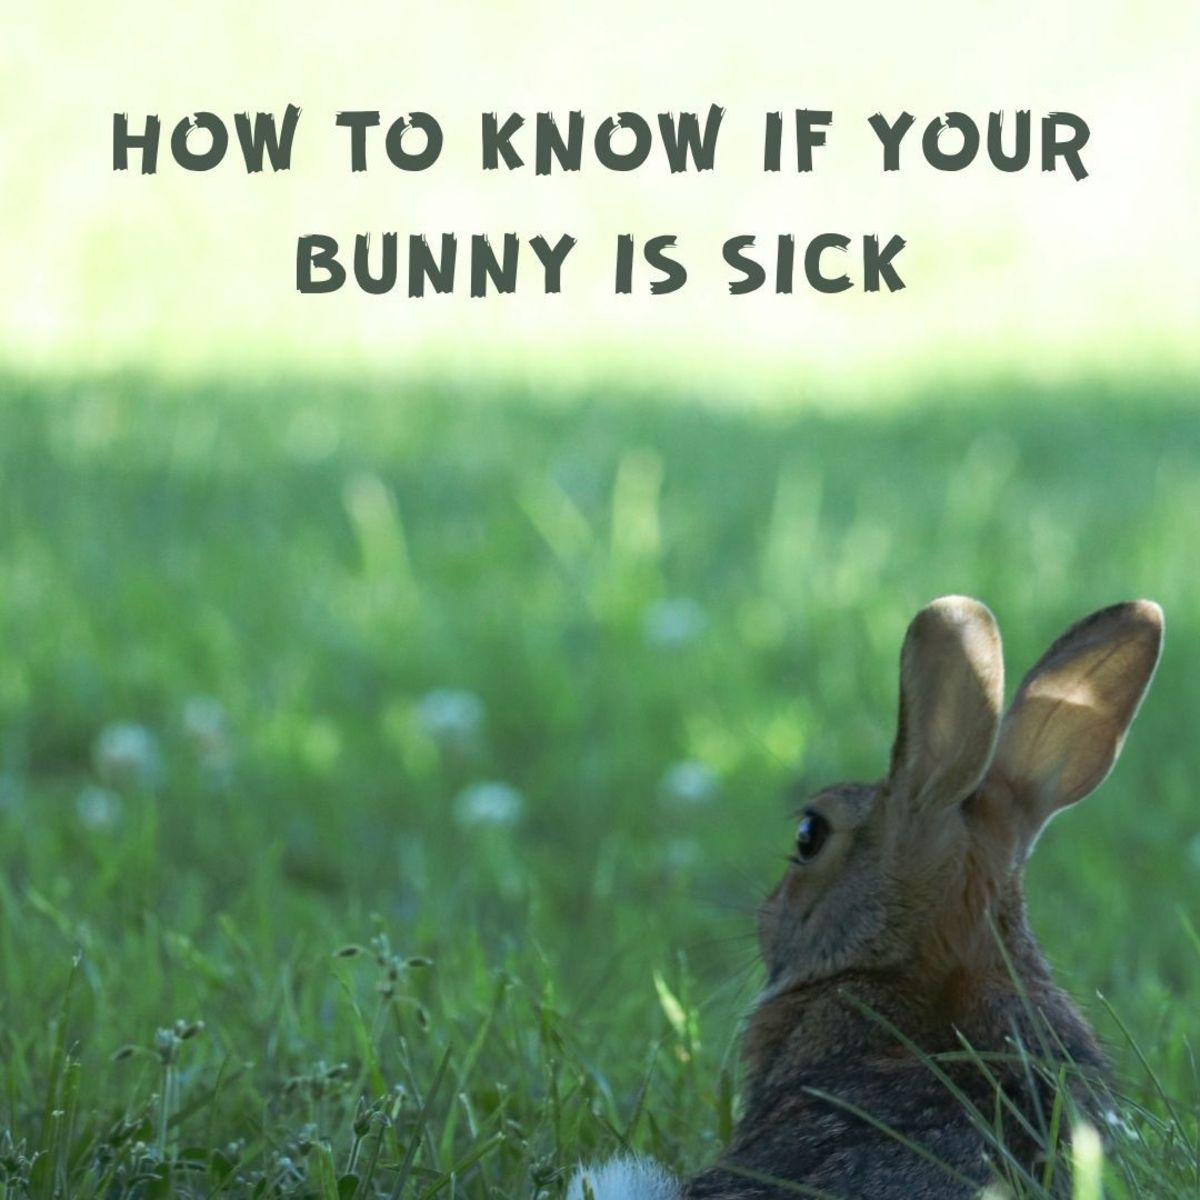 Is My Bunny Sick? 5 Signs It's Time to Go to the Vet